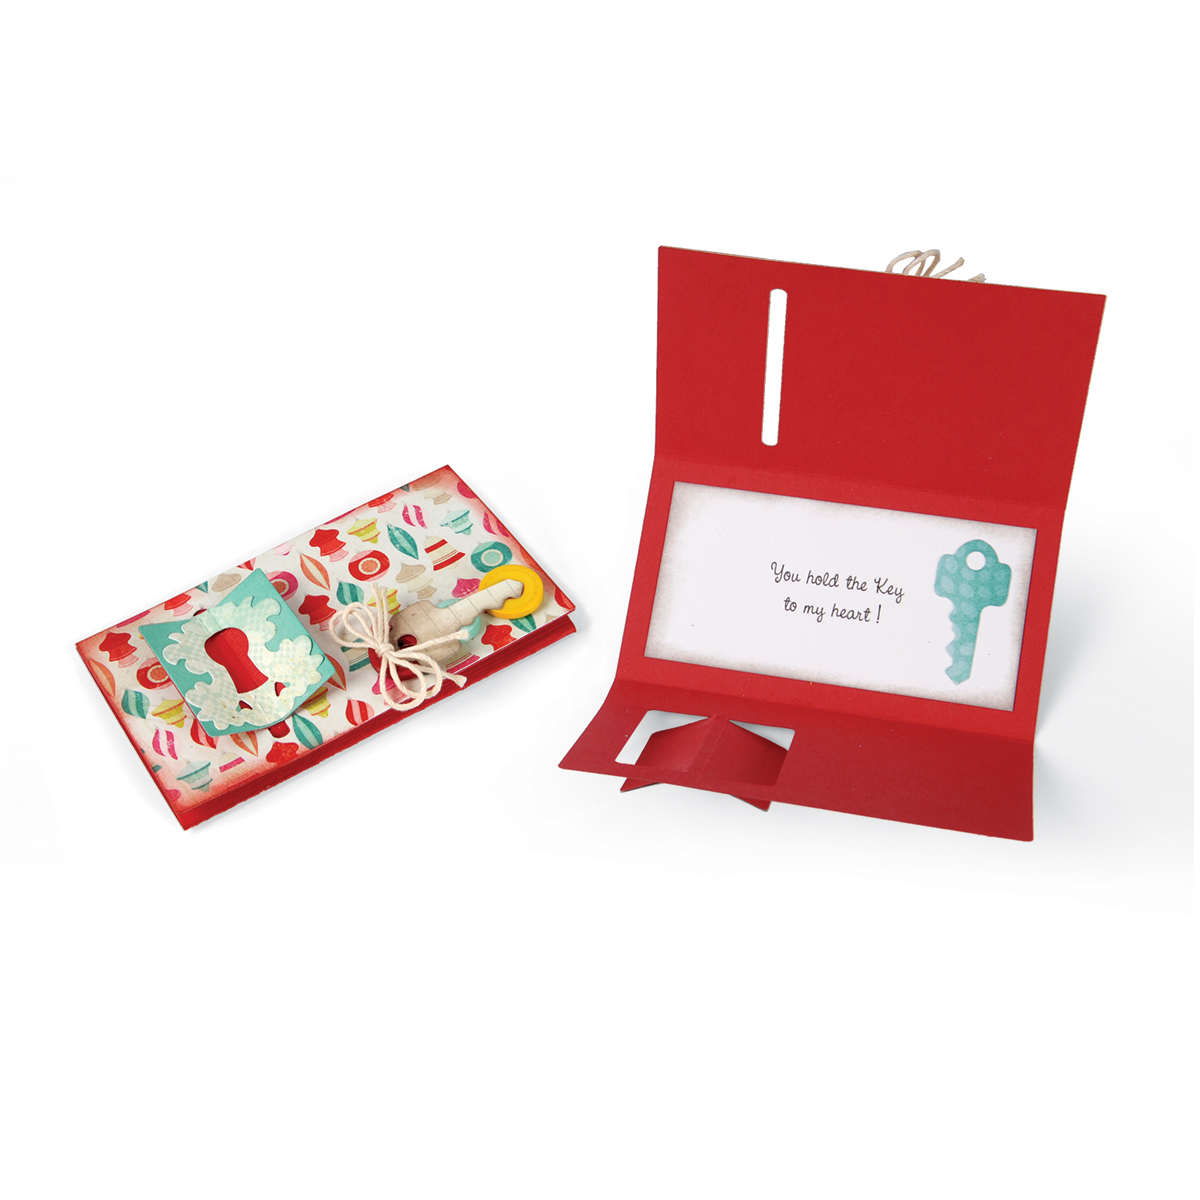 Sizzix Thinlits Dies Card with Folding Closure & Keys